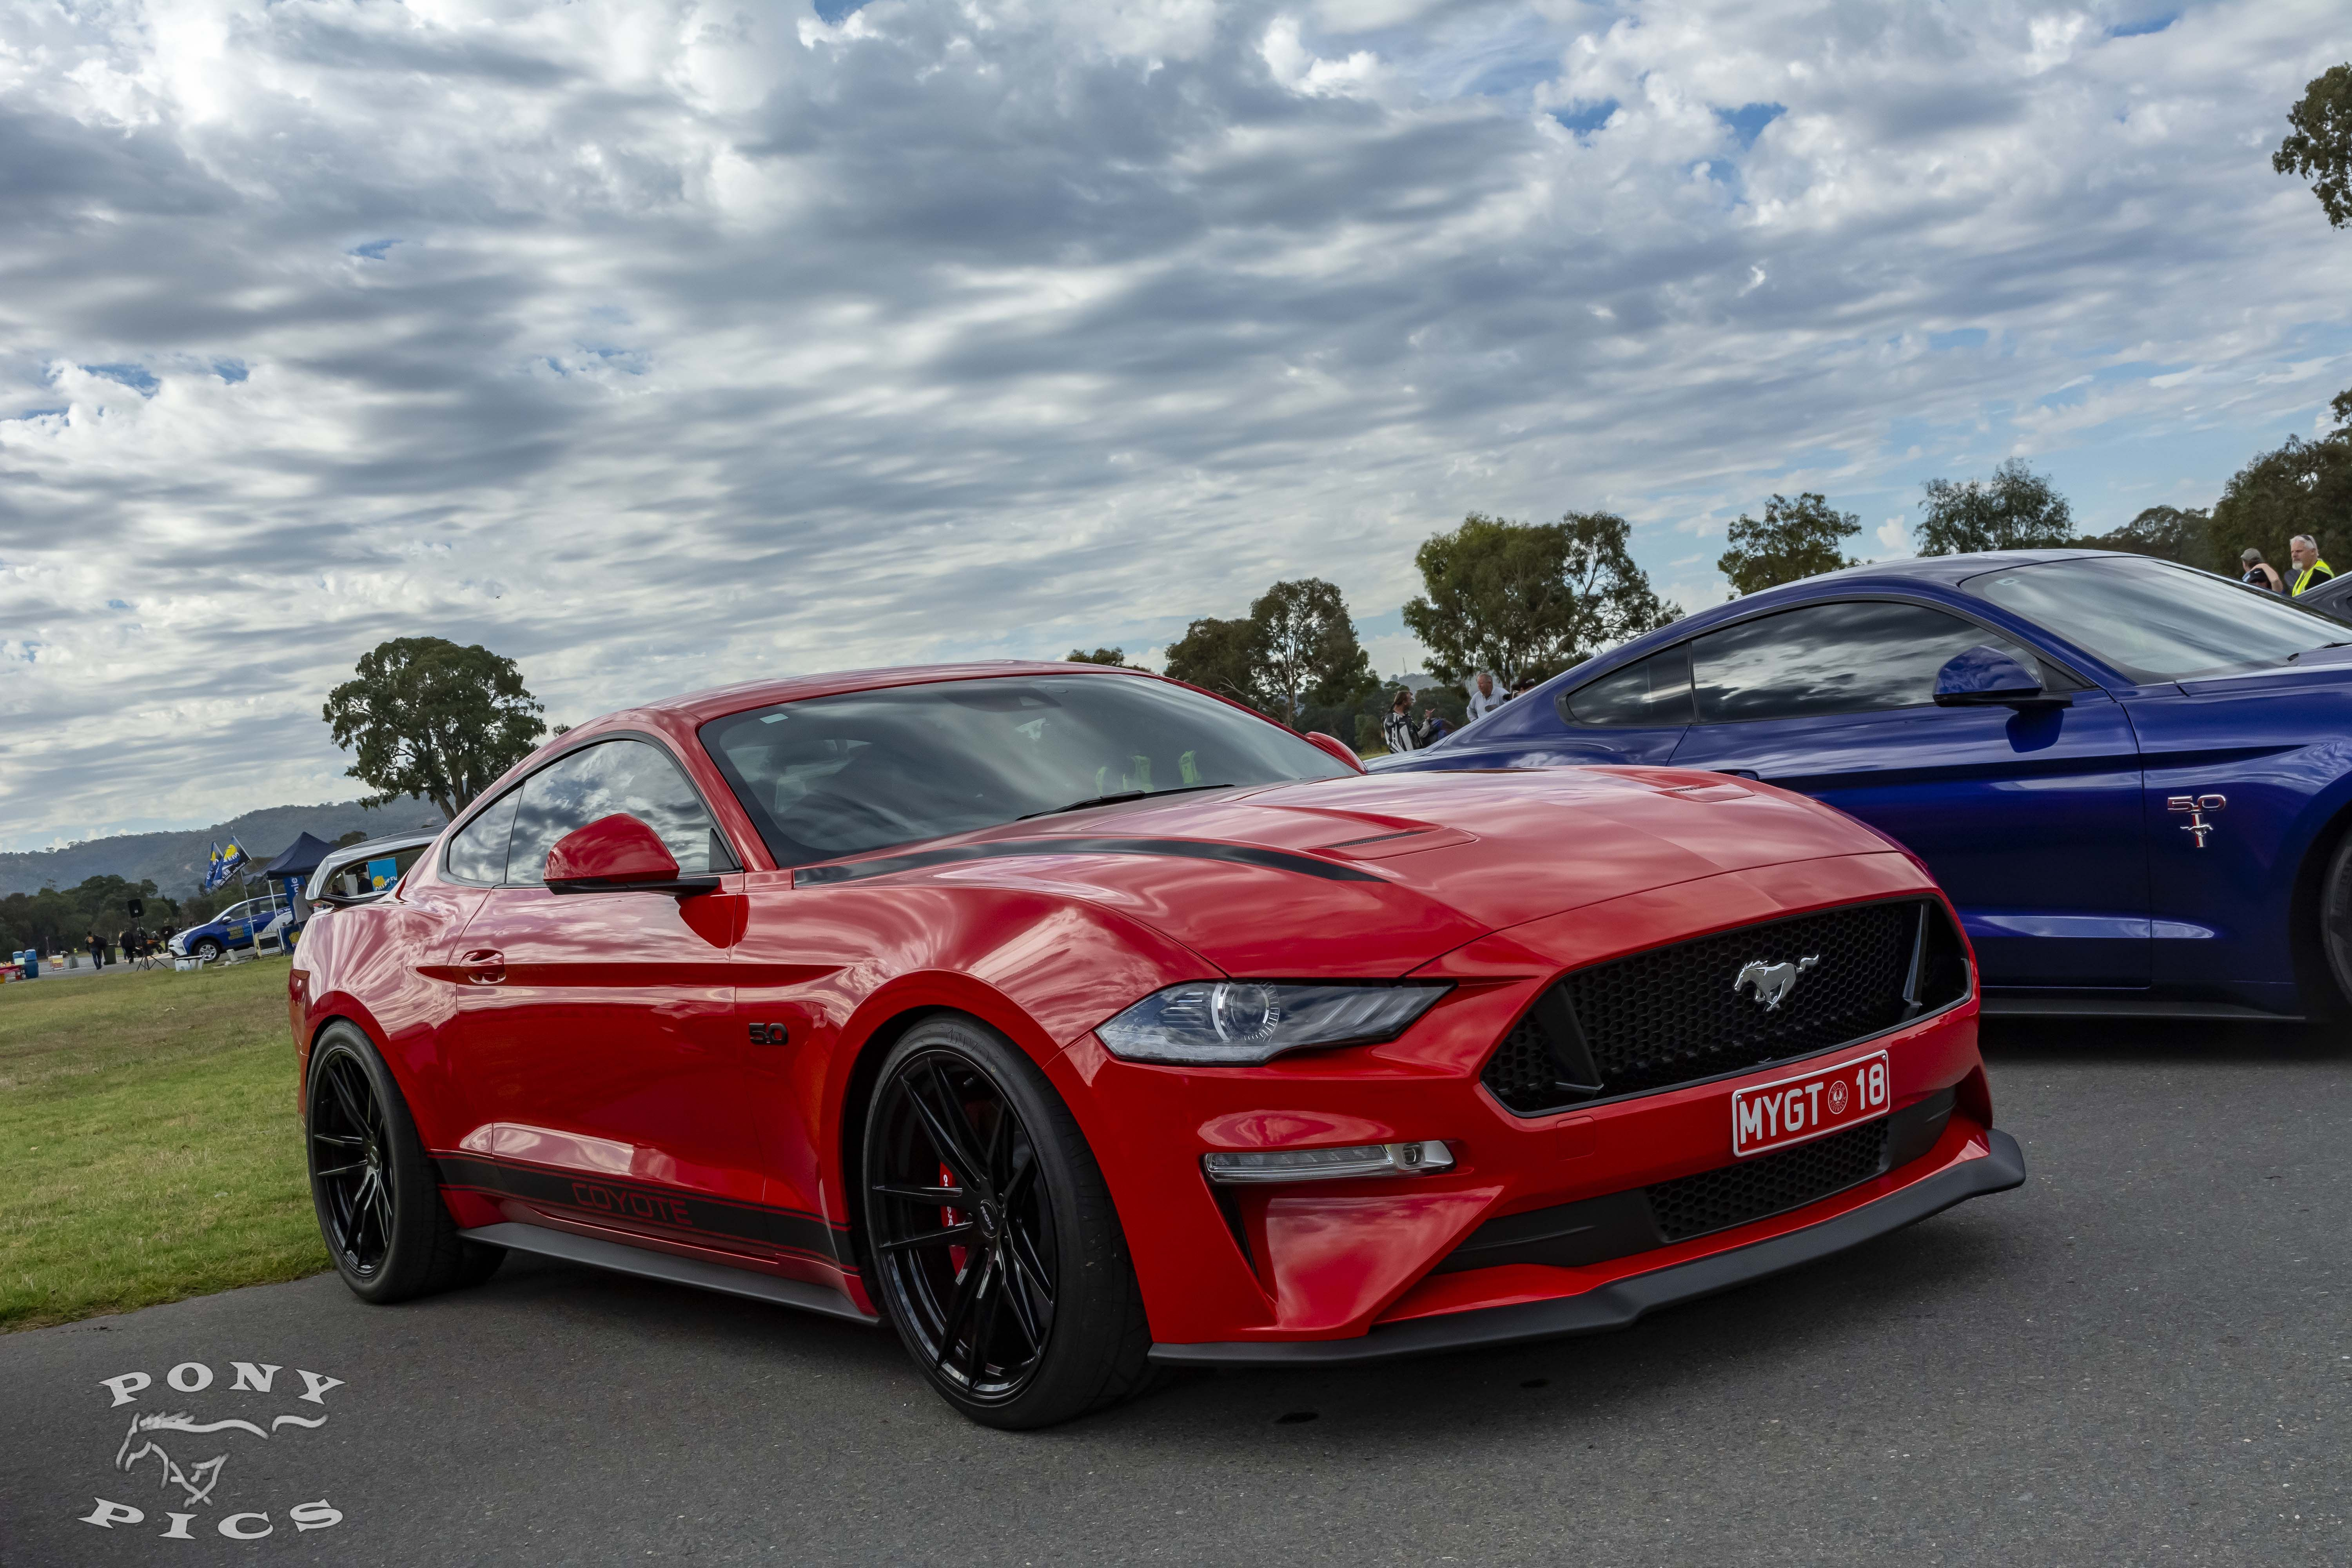 Pin By Danny Williams On Mustang 2018 Mustang Gt Mustang Gt